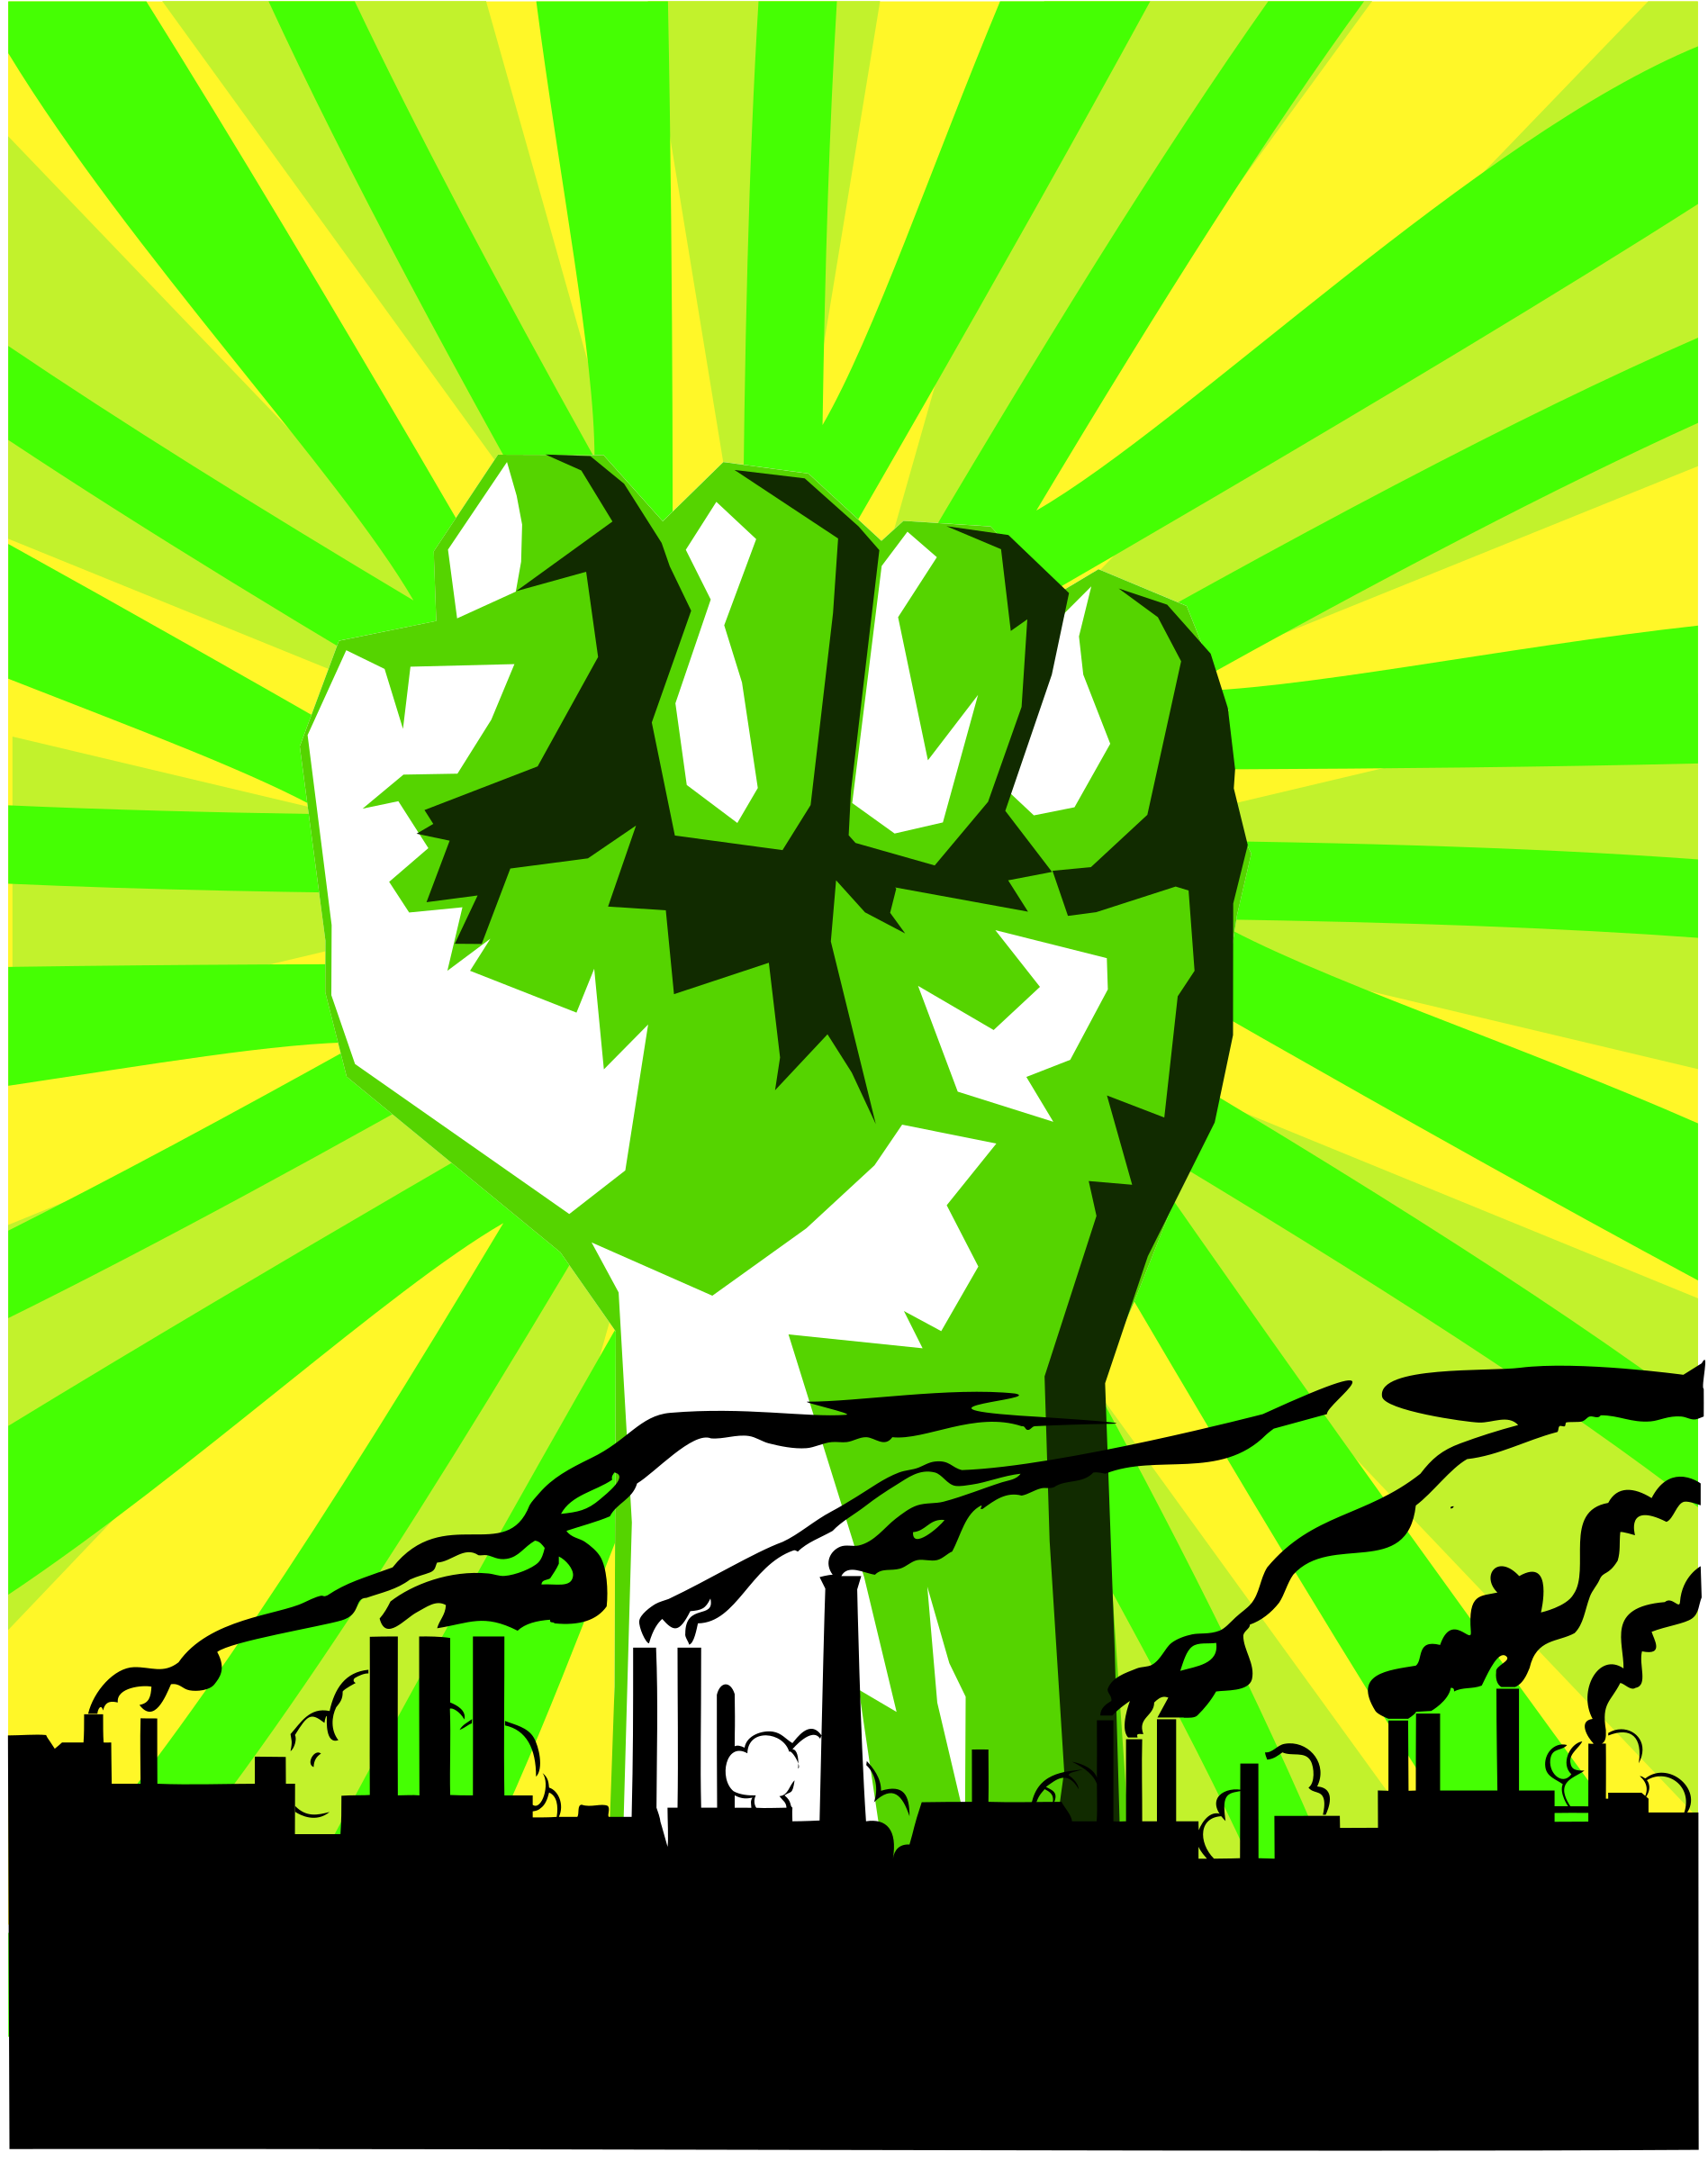 Green power against pollution by dominiquechappard